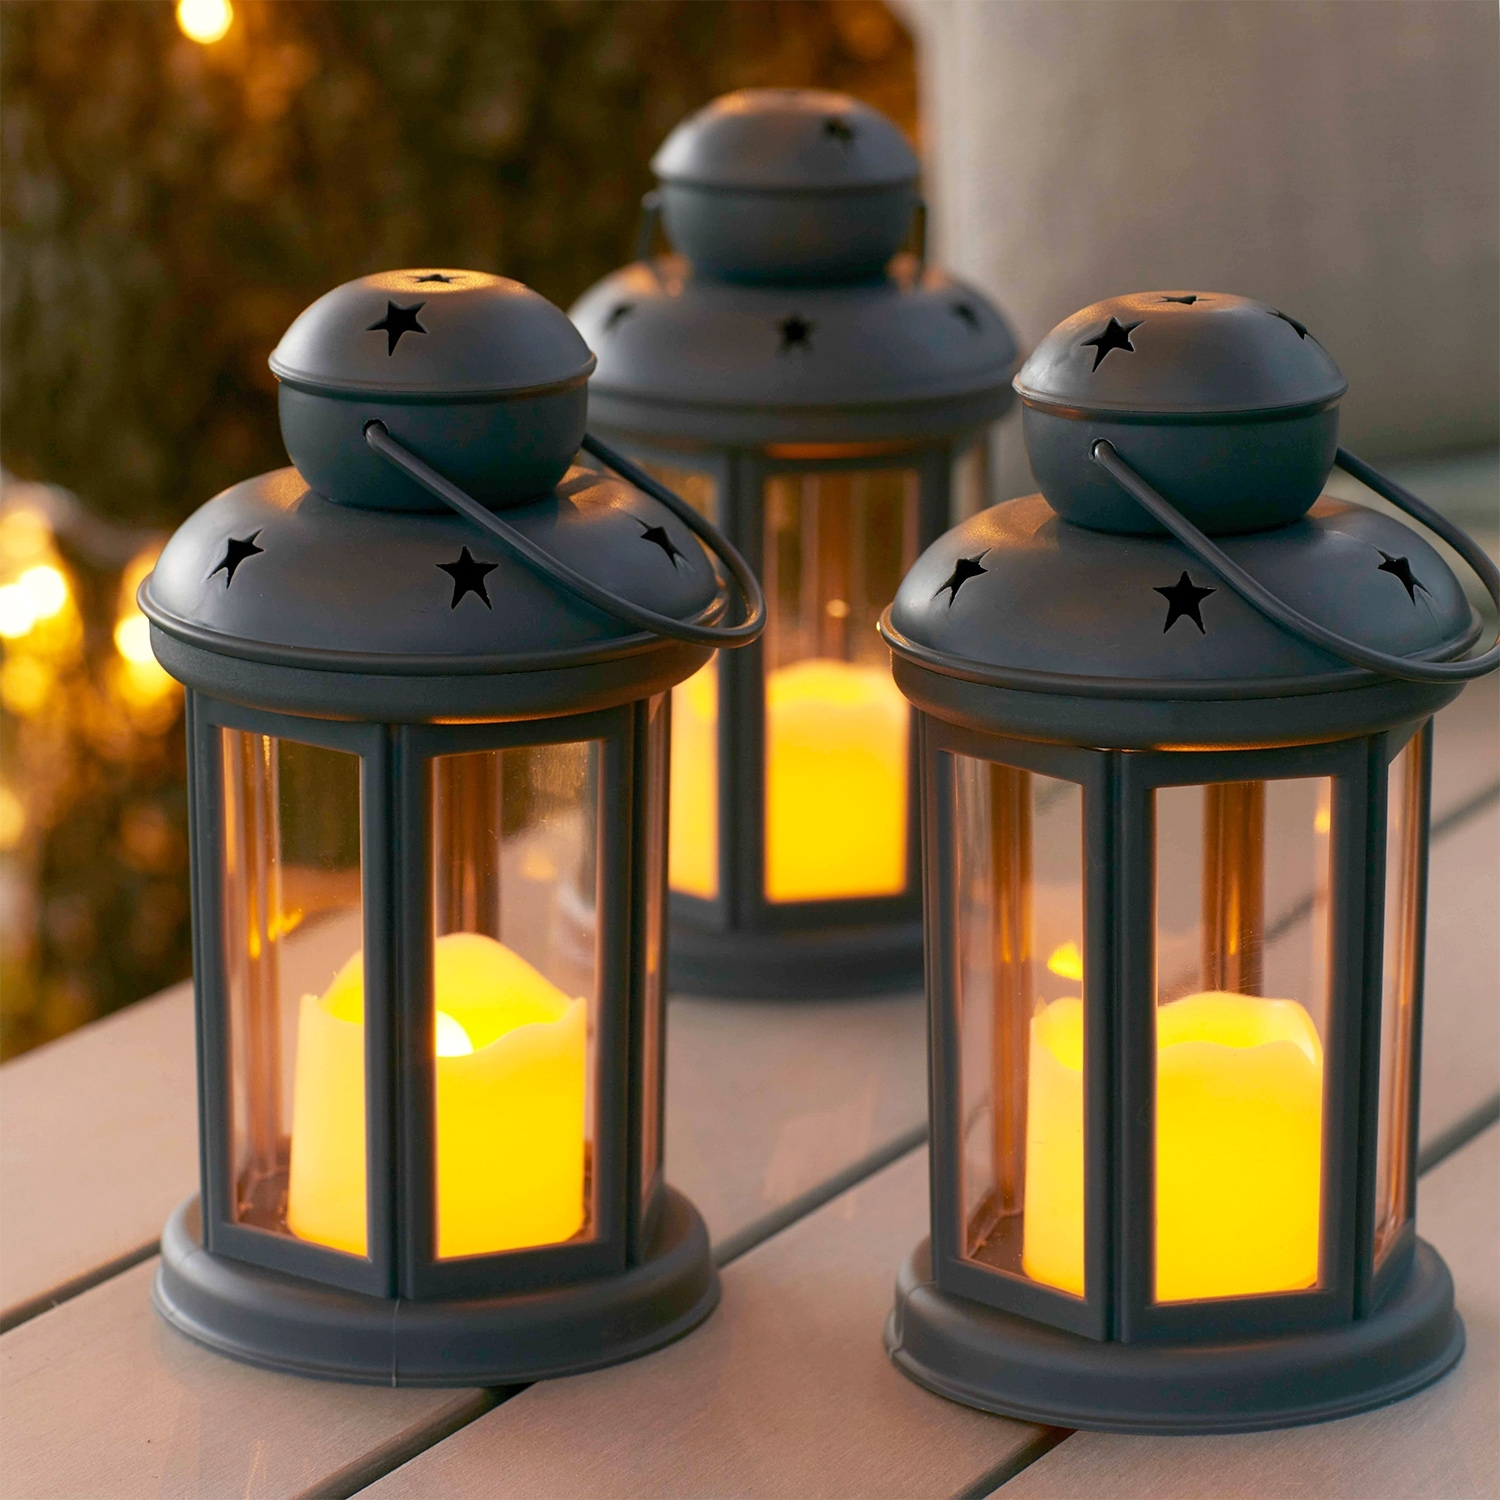 Set Of 3 Grey Battery Operated Led Indoor Outdoor Flameless Candle Regarding Outdoor Lanterns With Battery Operated Candles (View 18 of 20)